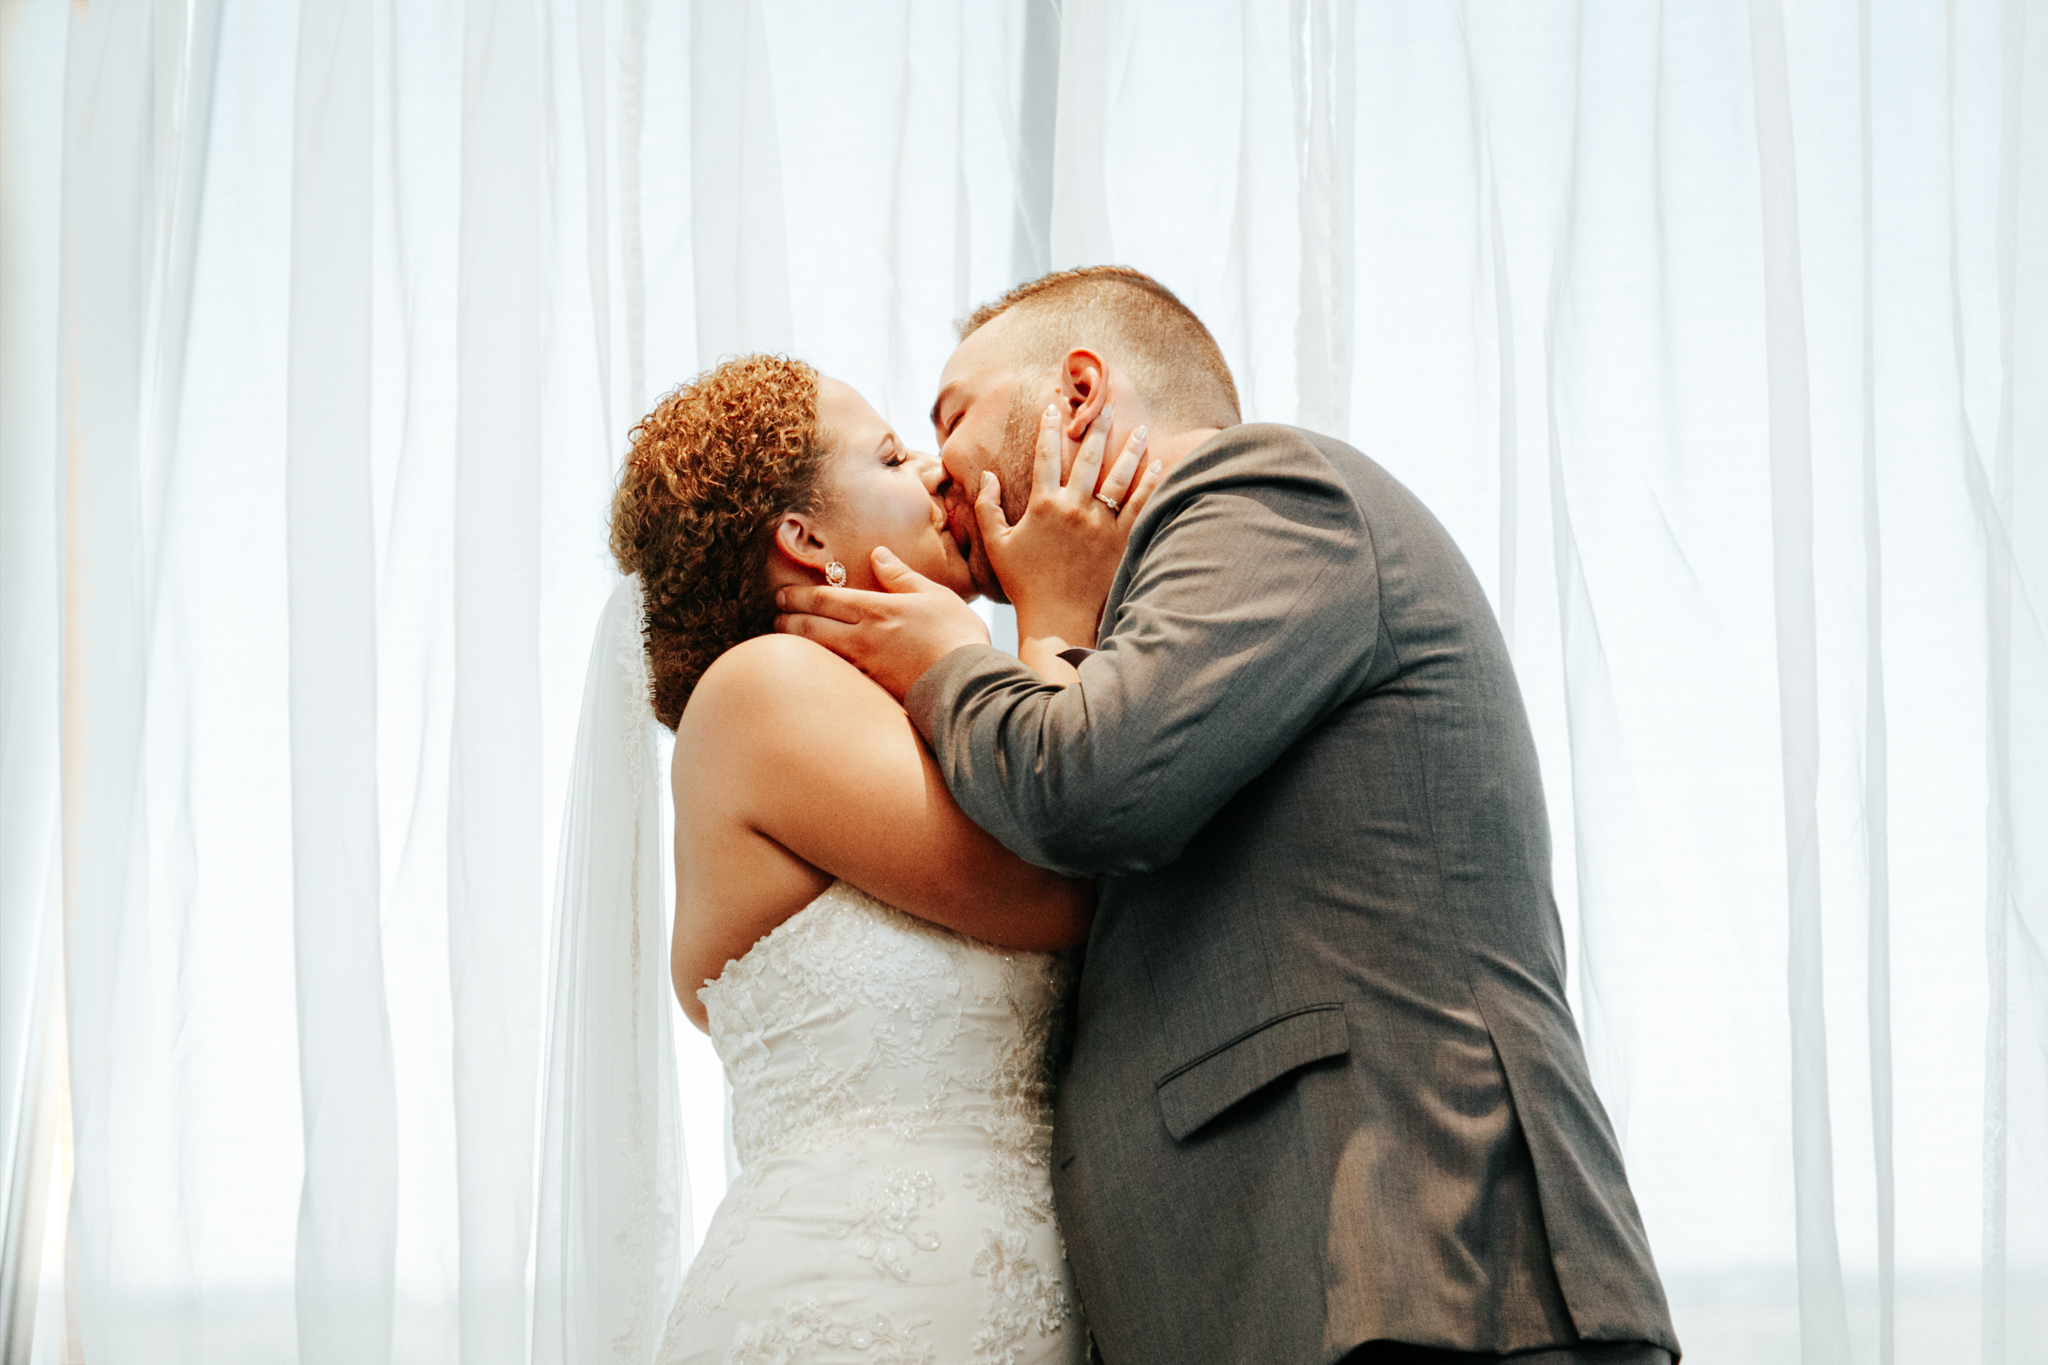 lethbridge-wedding-photographer-love-and-be-loved-photography-trent-danielle-galt-reception-picture-image-photo-56.jpg